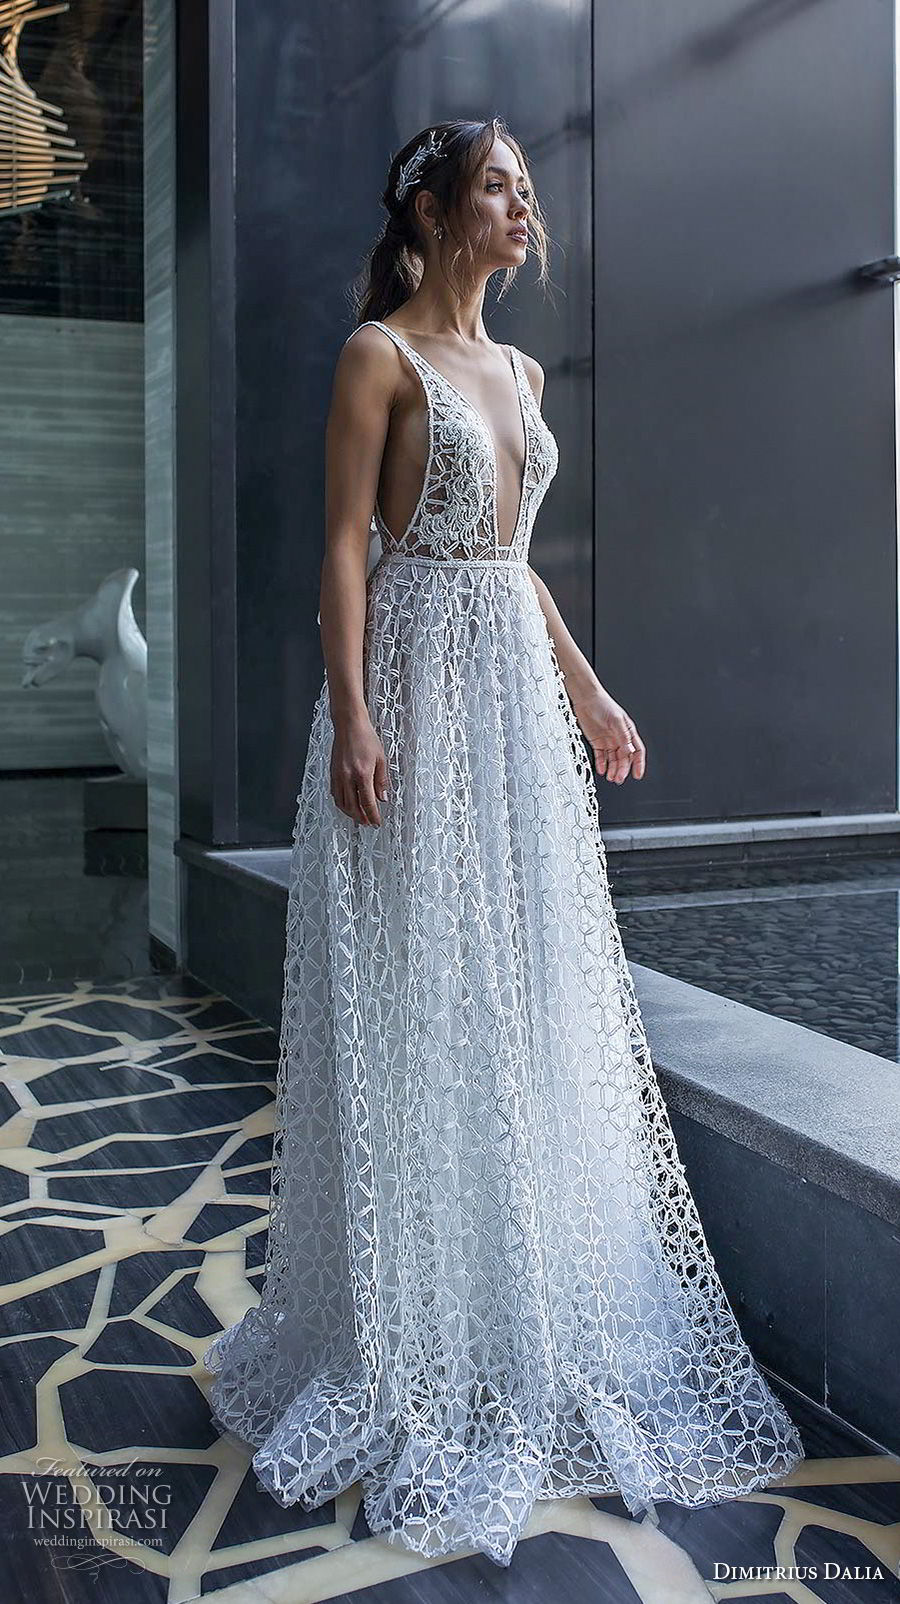 dimitrius dalia 2018 royal sleeveless with strap deep v neck full embellishment sexy romantic a line wedding dress v ribbon back sweep train (4) mv